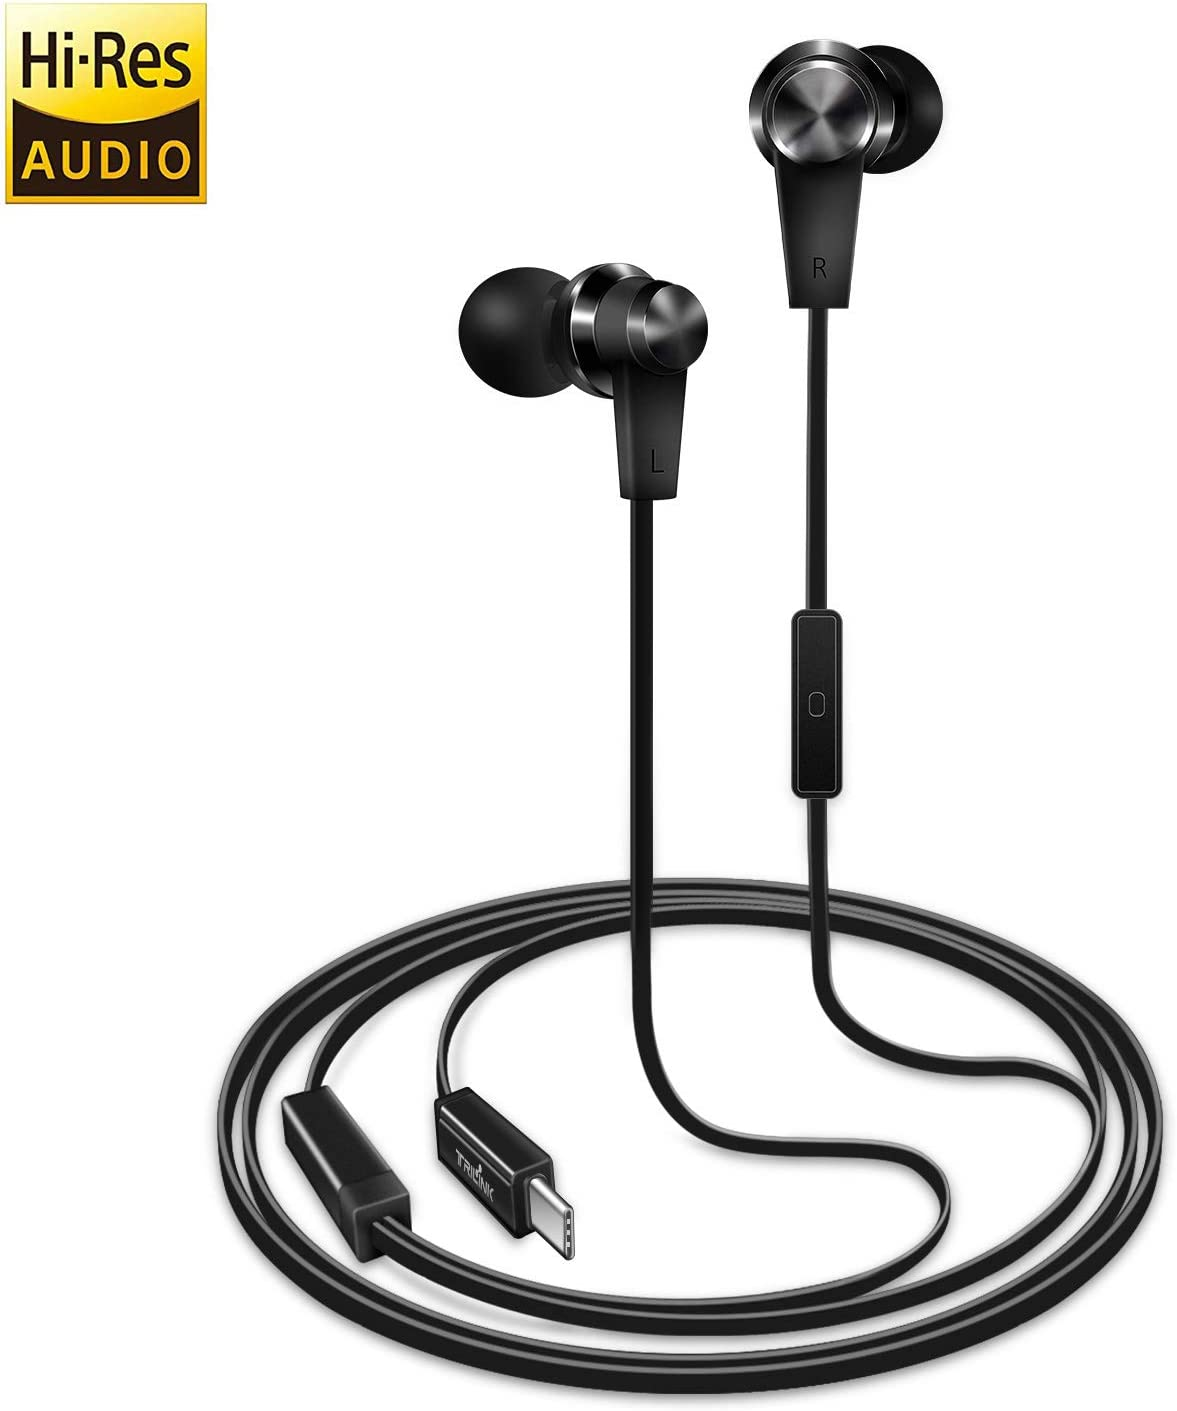 TriLink USB Tipo C Auriculares de botón(DAC Chipset) Auriculares In Ear con Micrófono para iPad Pro/MacBook, Huawei P30/P20/Pro/Mate 20/Mate 10, OnePlus 6/6T/5/5T, Xiaomi, Google Pixel 3/3XL, HTC U12